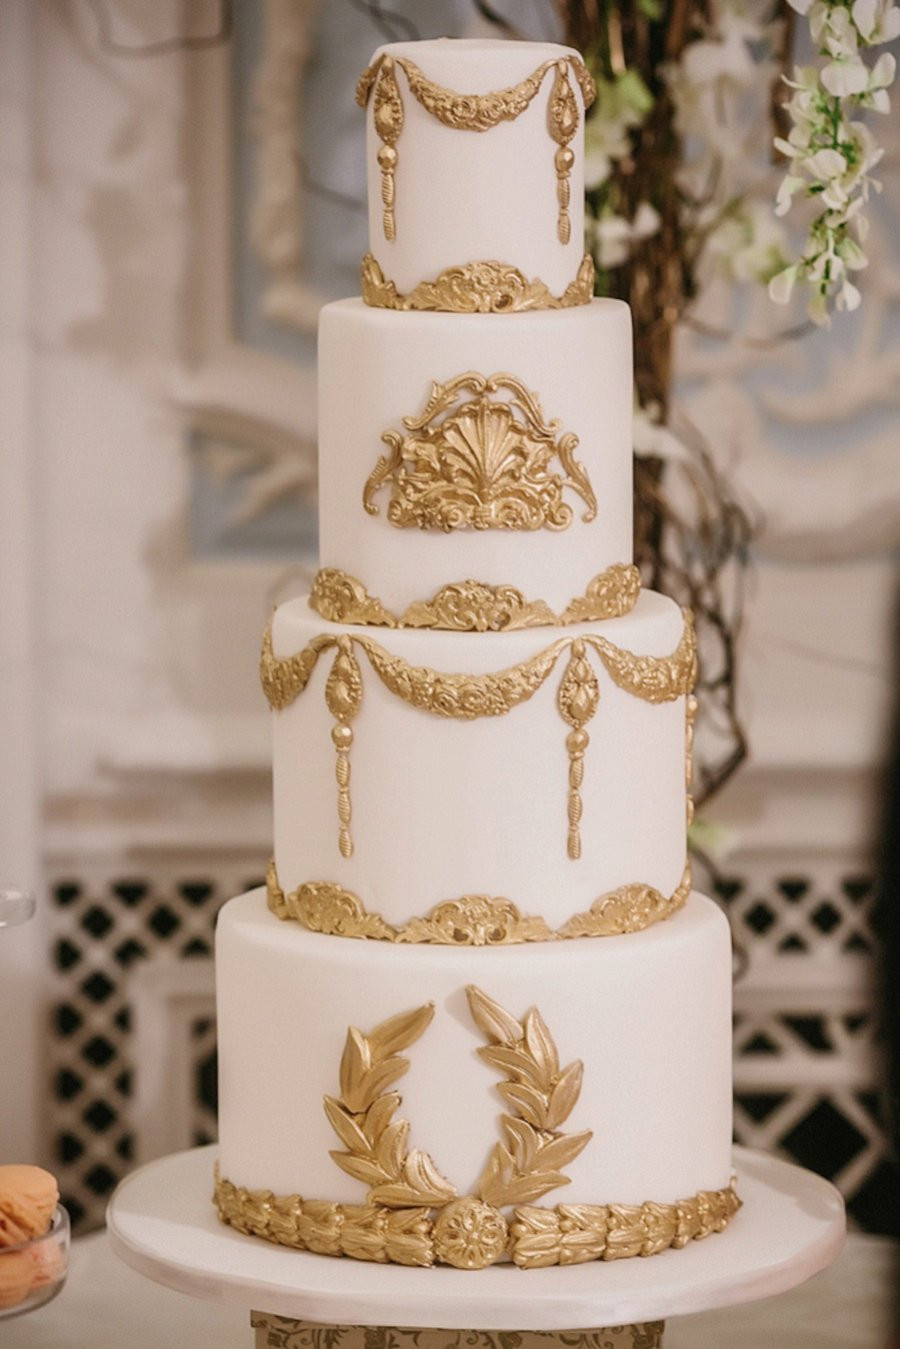 Wedding Cakes White And Gold  Top 10 Wedding Cake Trends for 2016